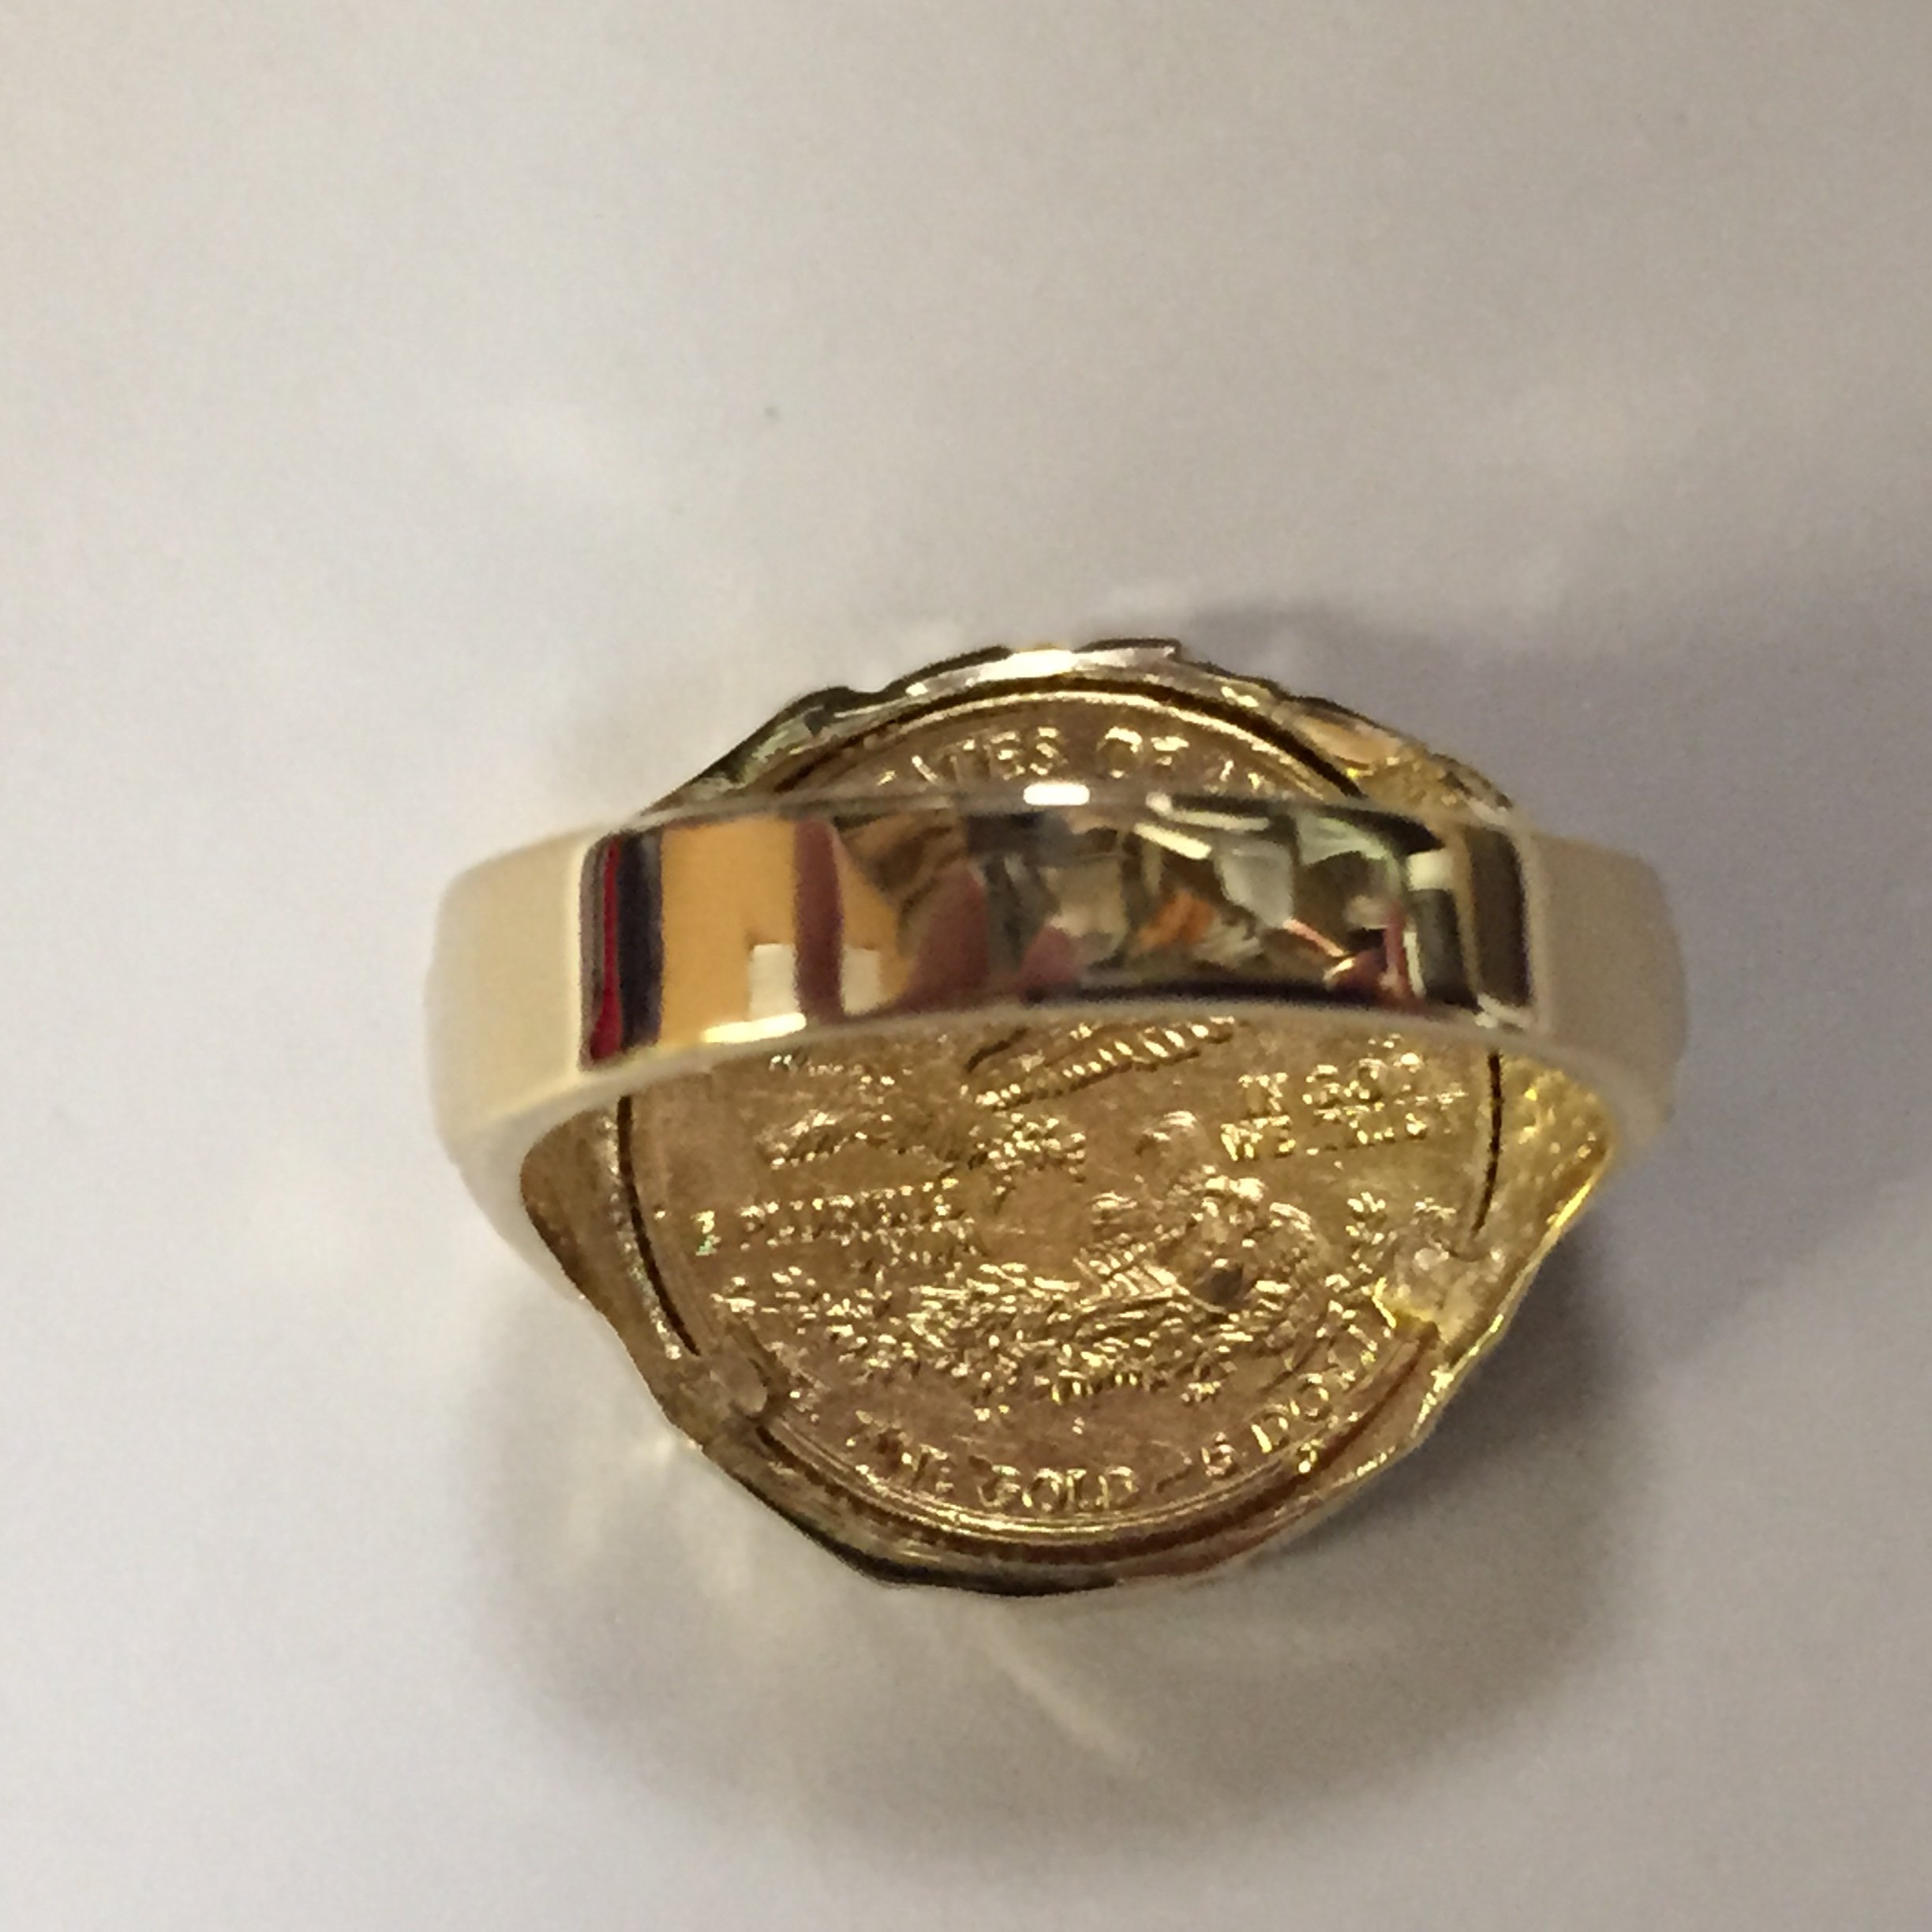 22K-Fine Gold 1/10 Oz Us American Eagle Coin In -14K Nugget Ring 1510 (Random Year Coin) by TEX (Image #3)